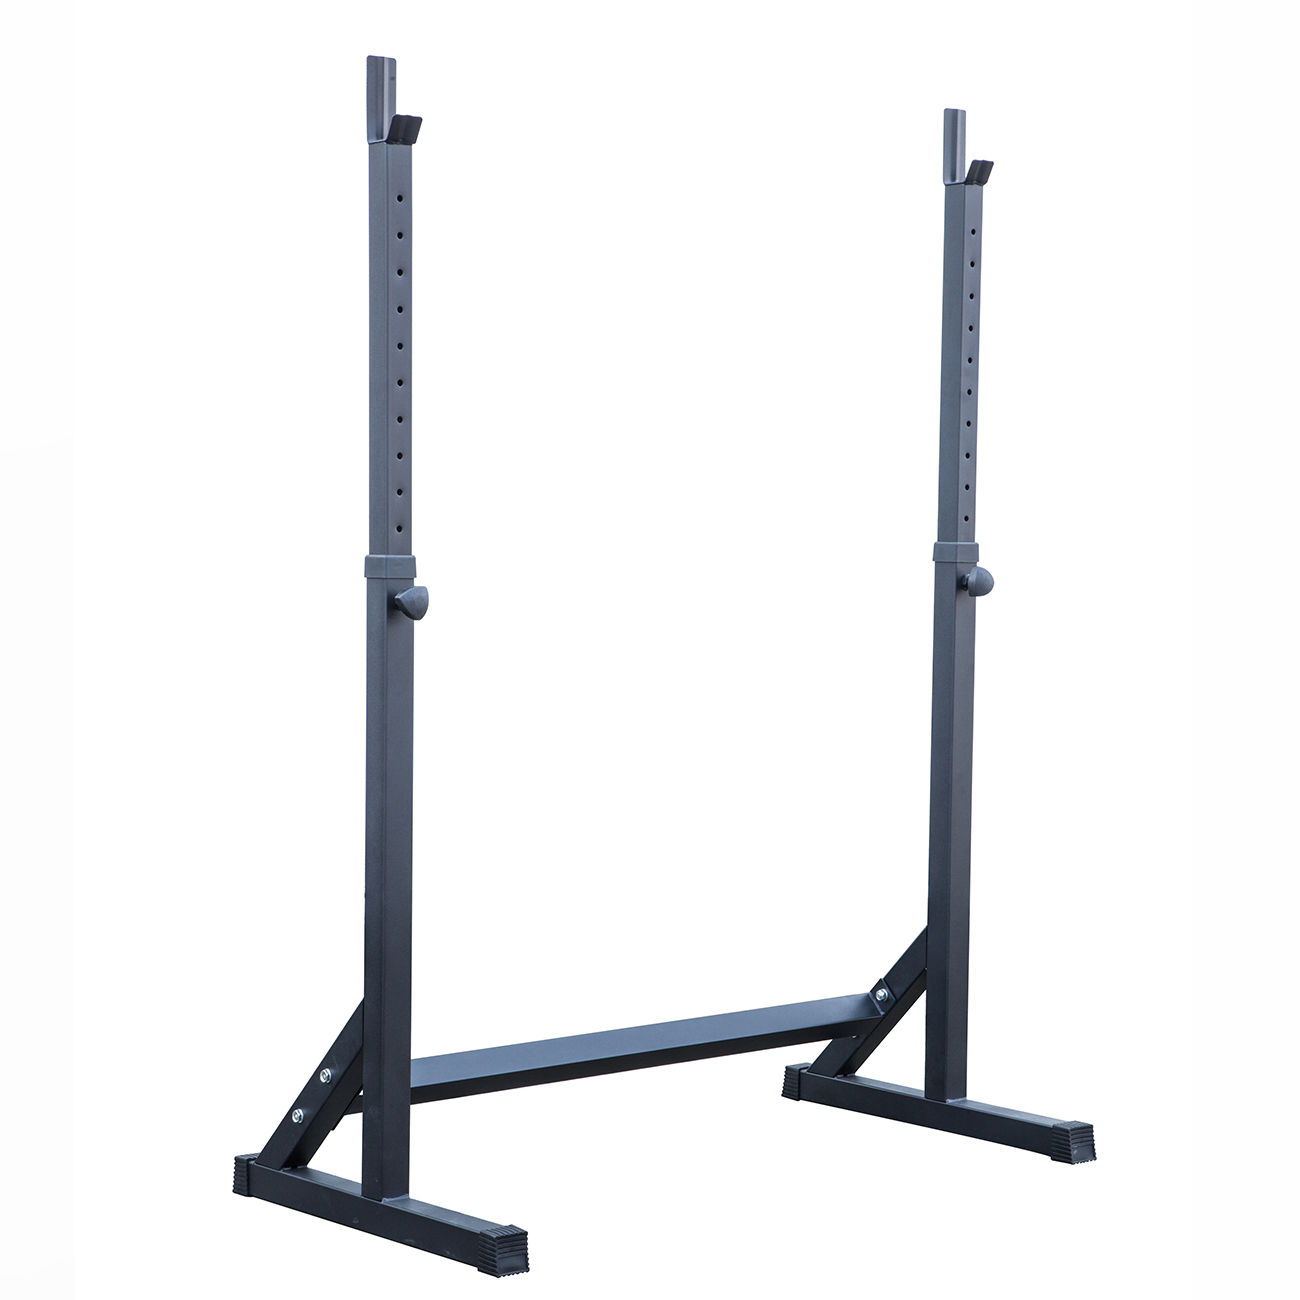 Adjustable Squat Rack Stand Barball Free Press Bench Equipment Training Crossfit Work Out Wear